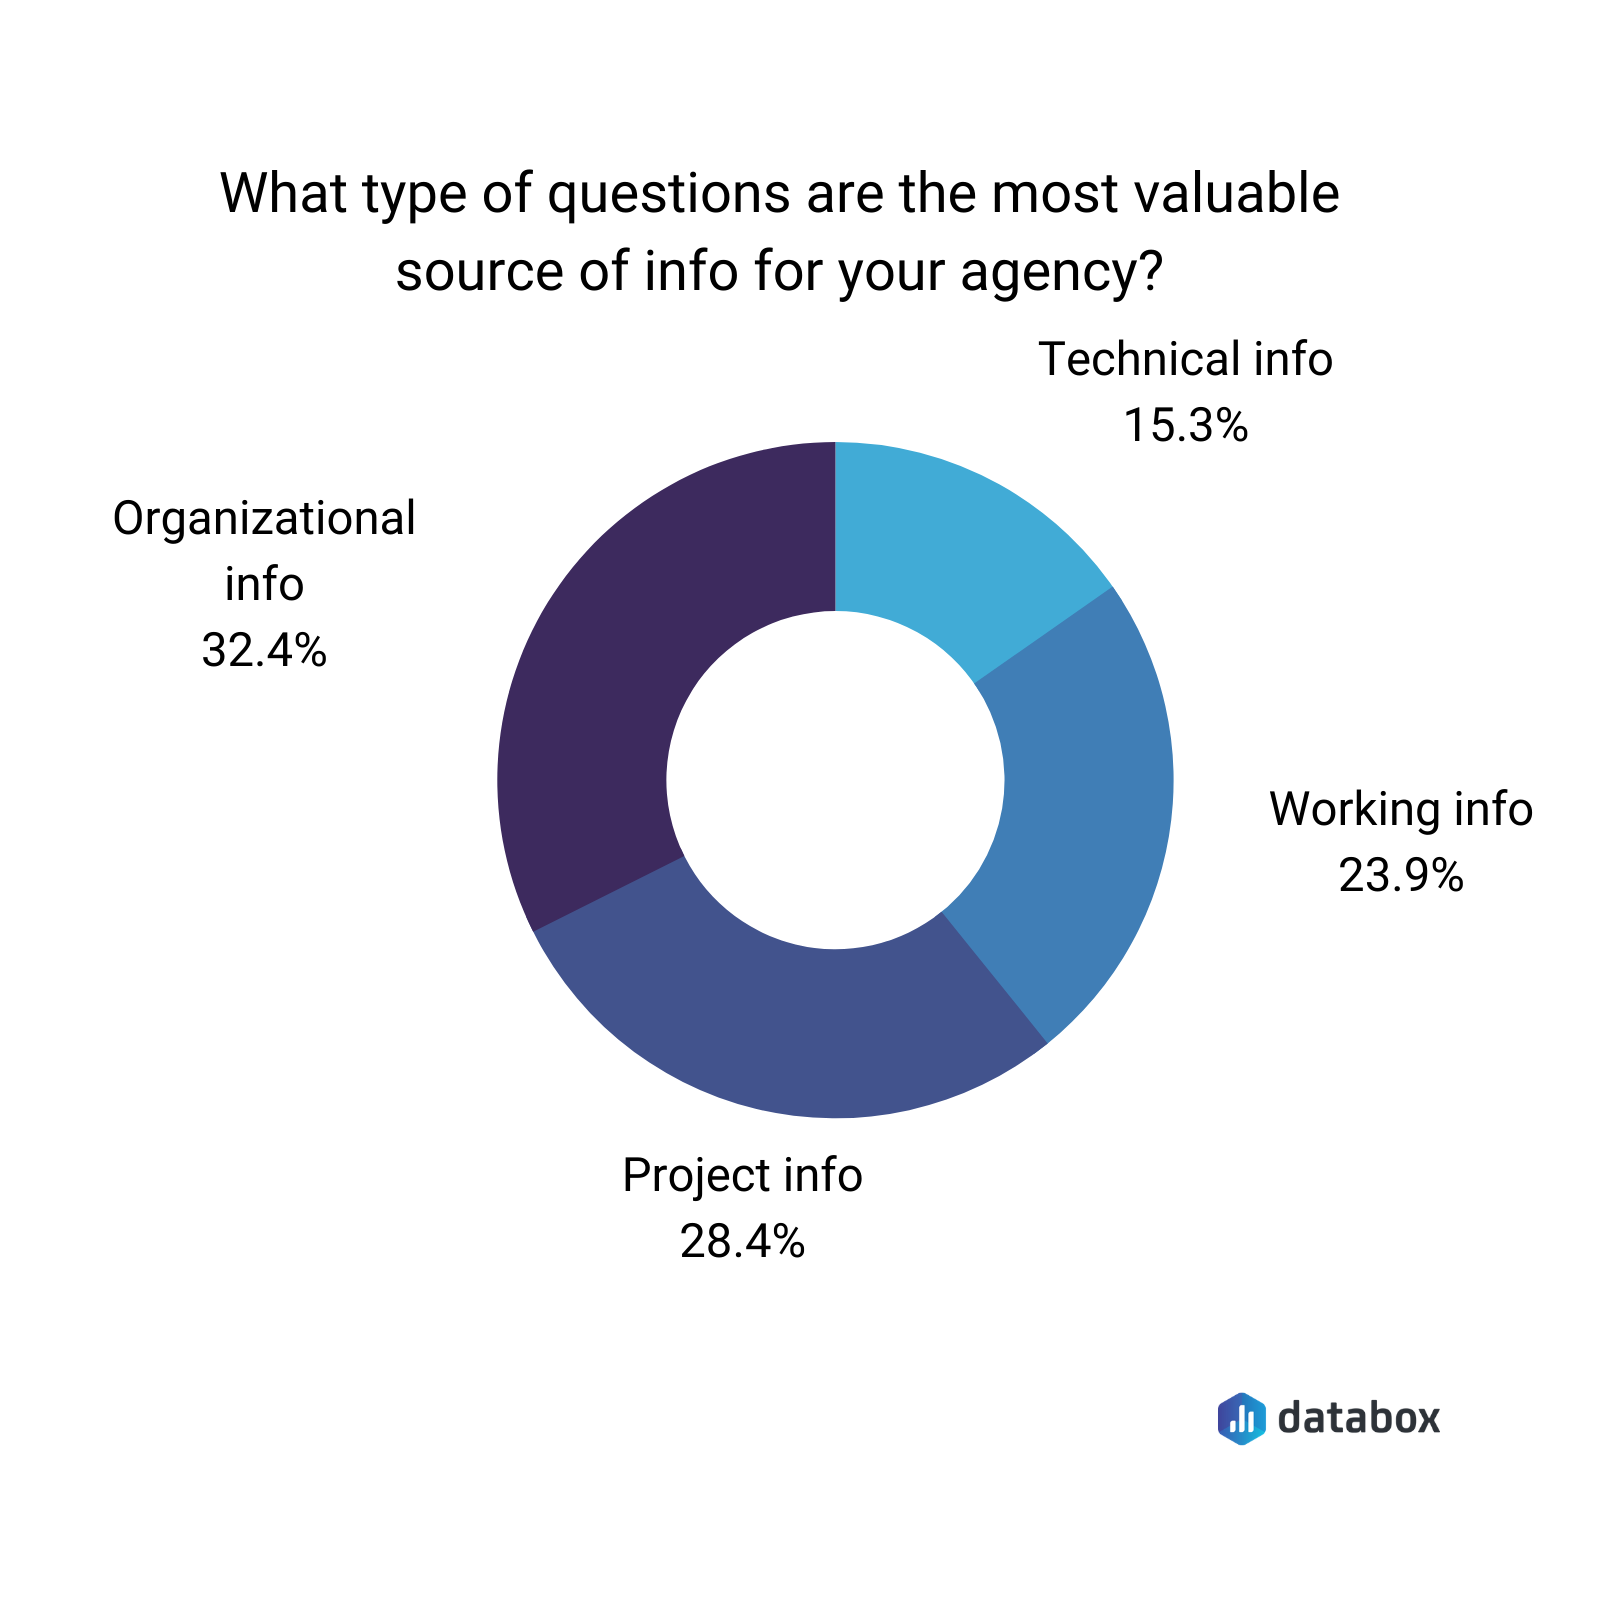 what type of questions are the most valuable source of info for your agency?